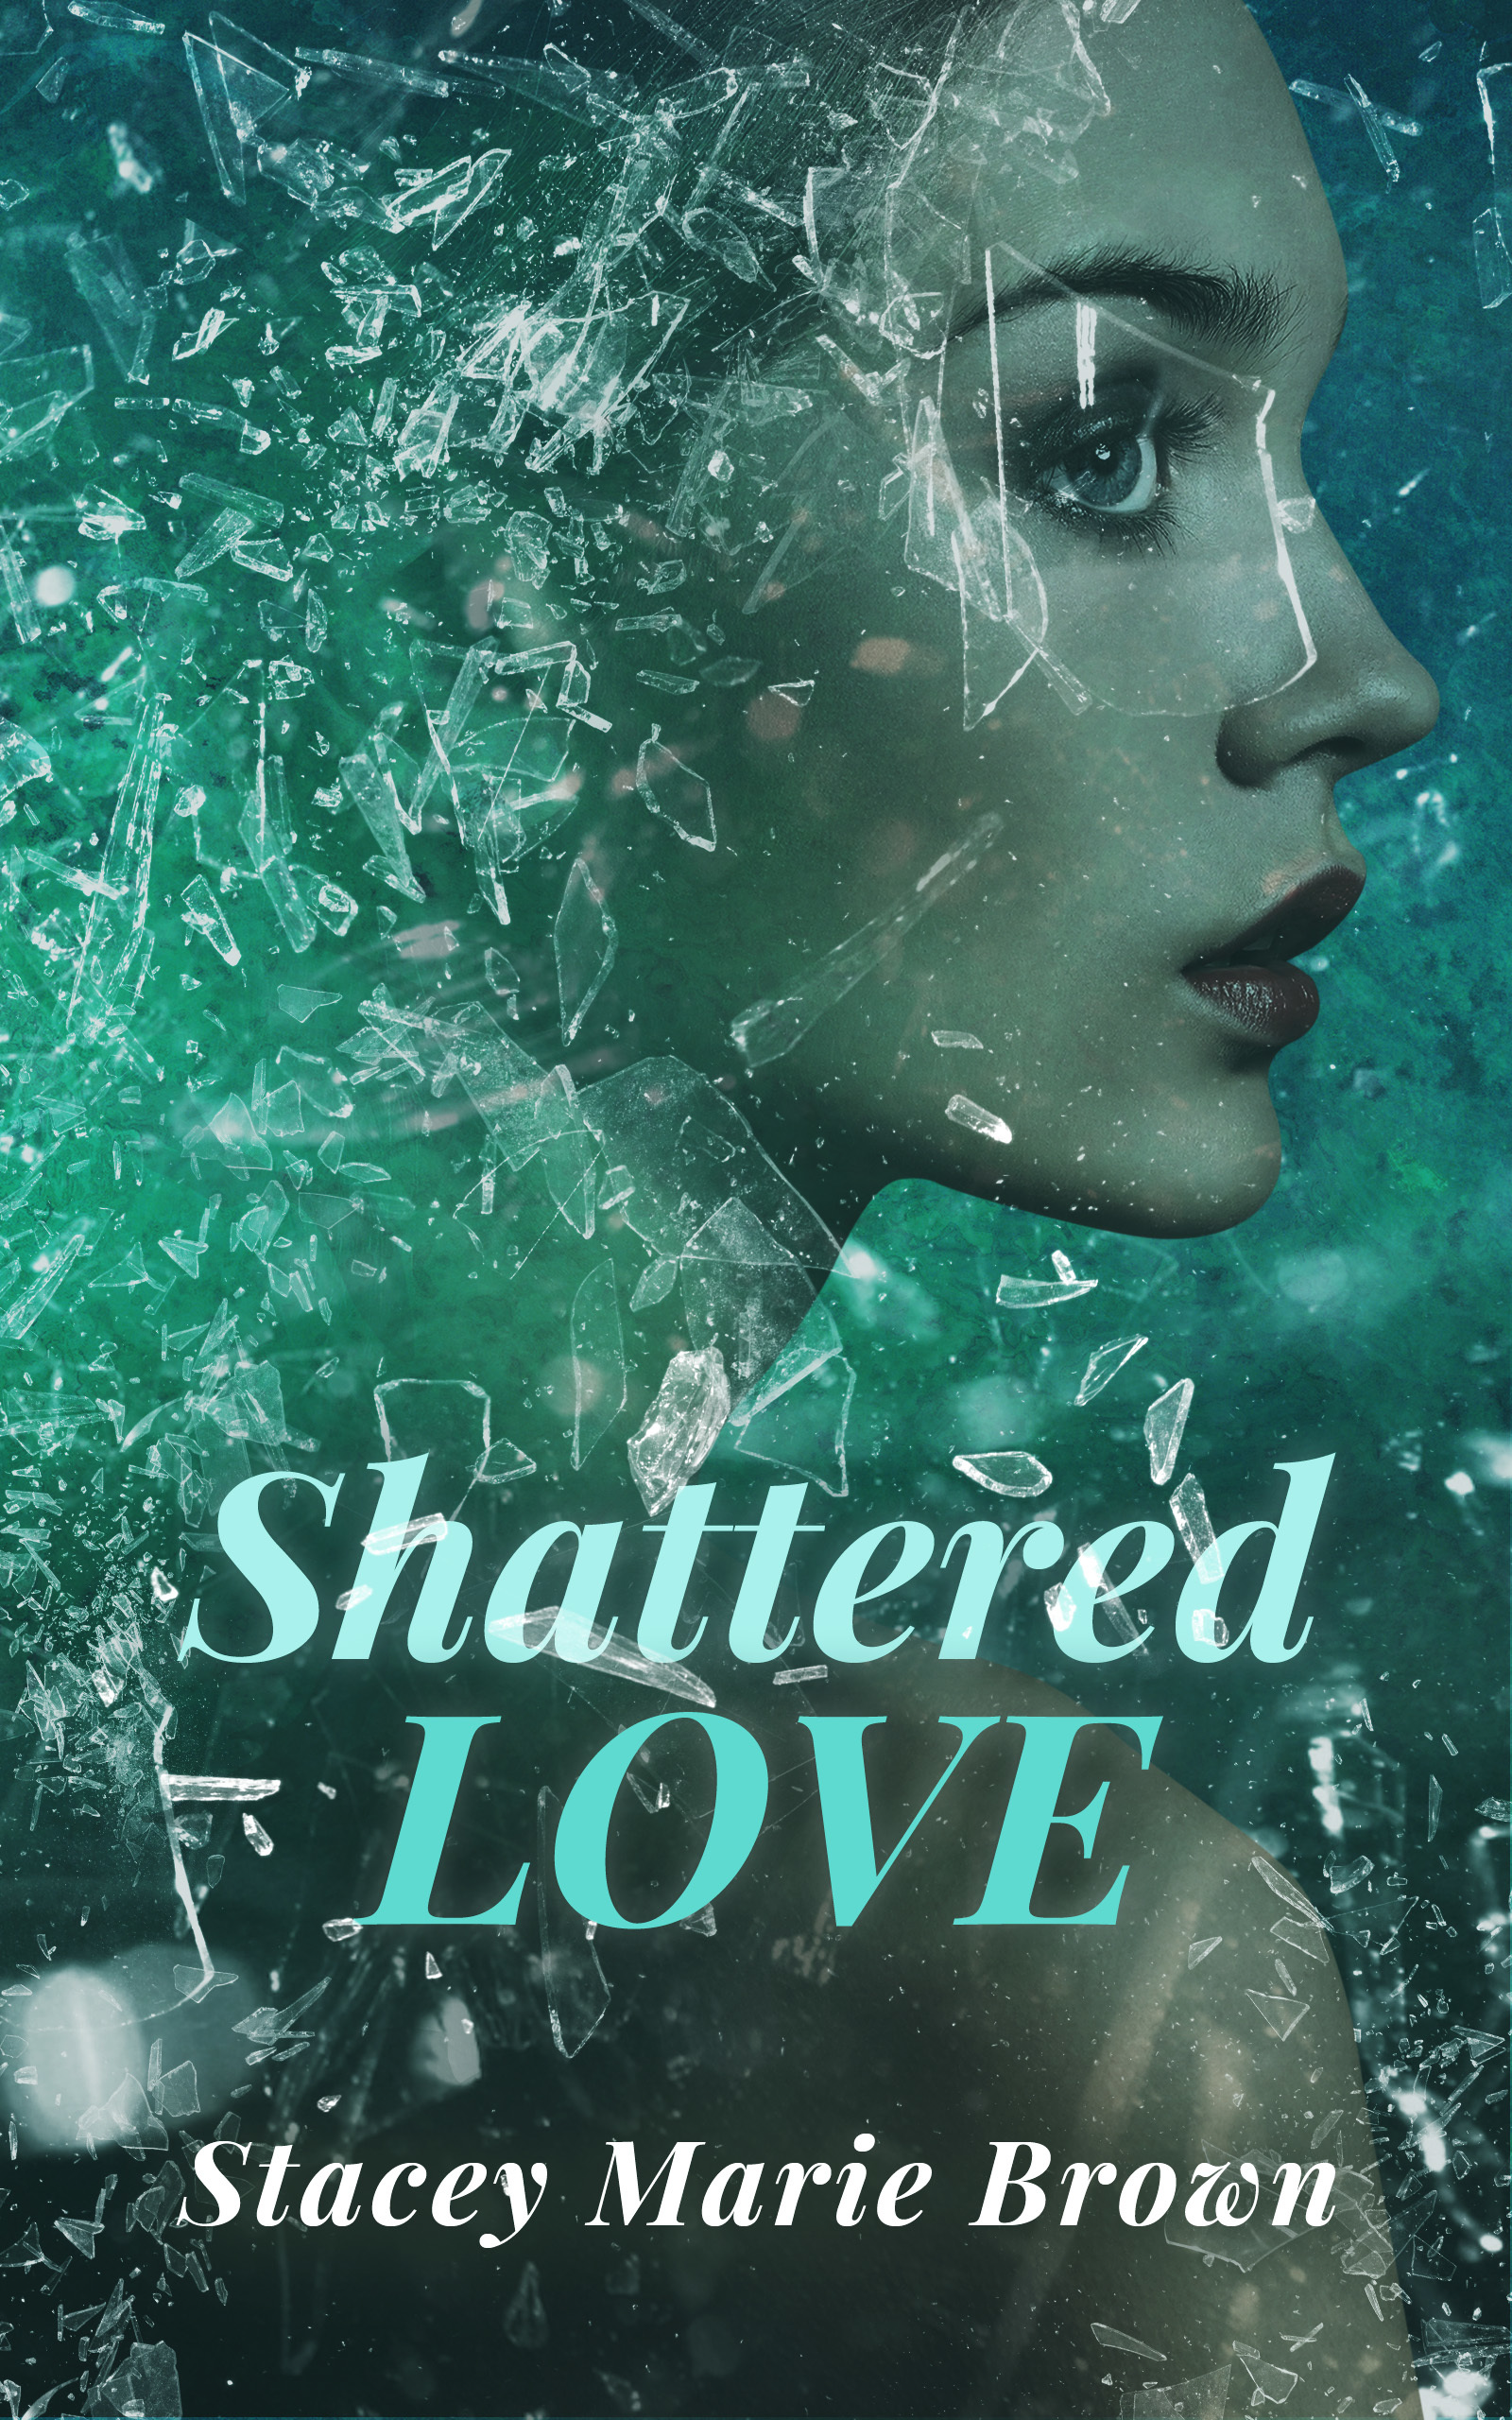 Stacey Marie Brown - Shattered Love